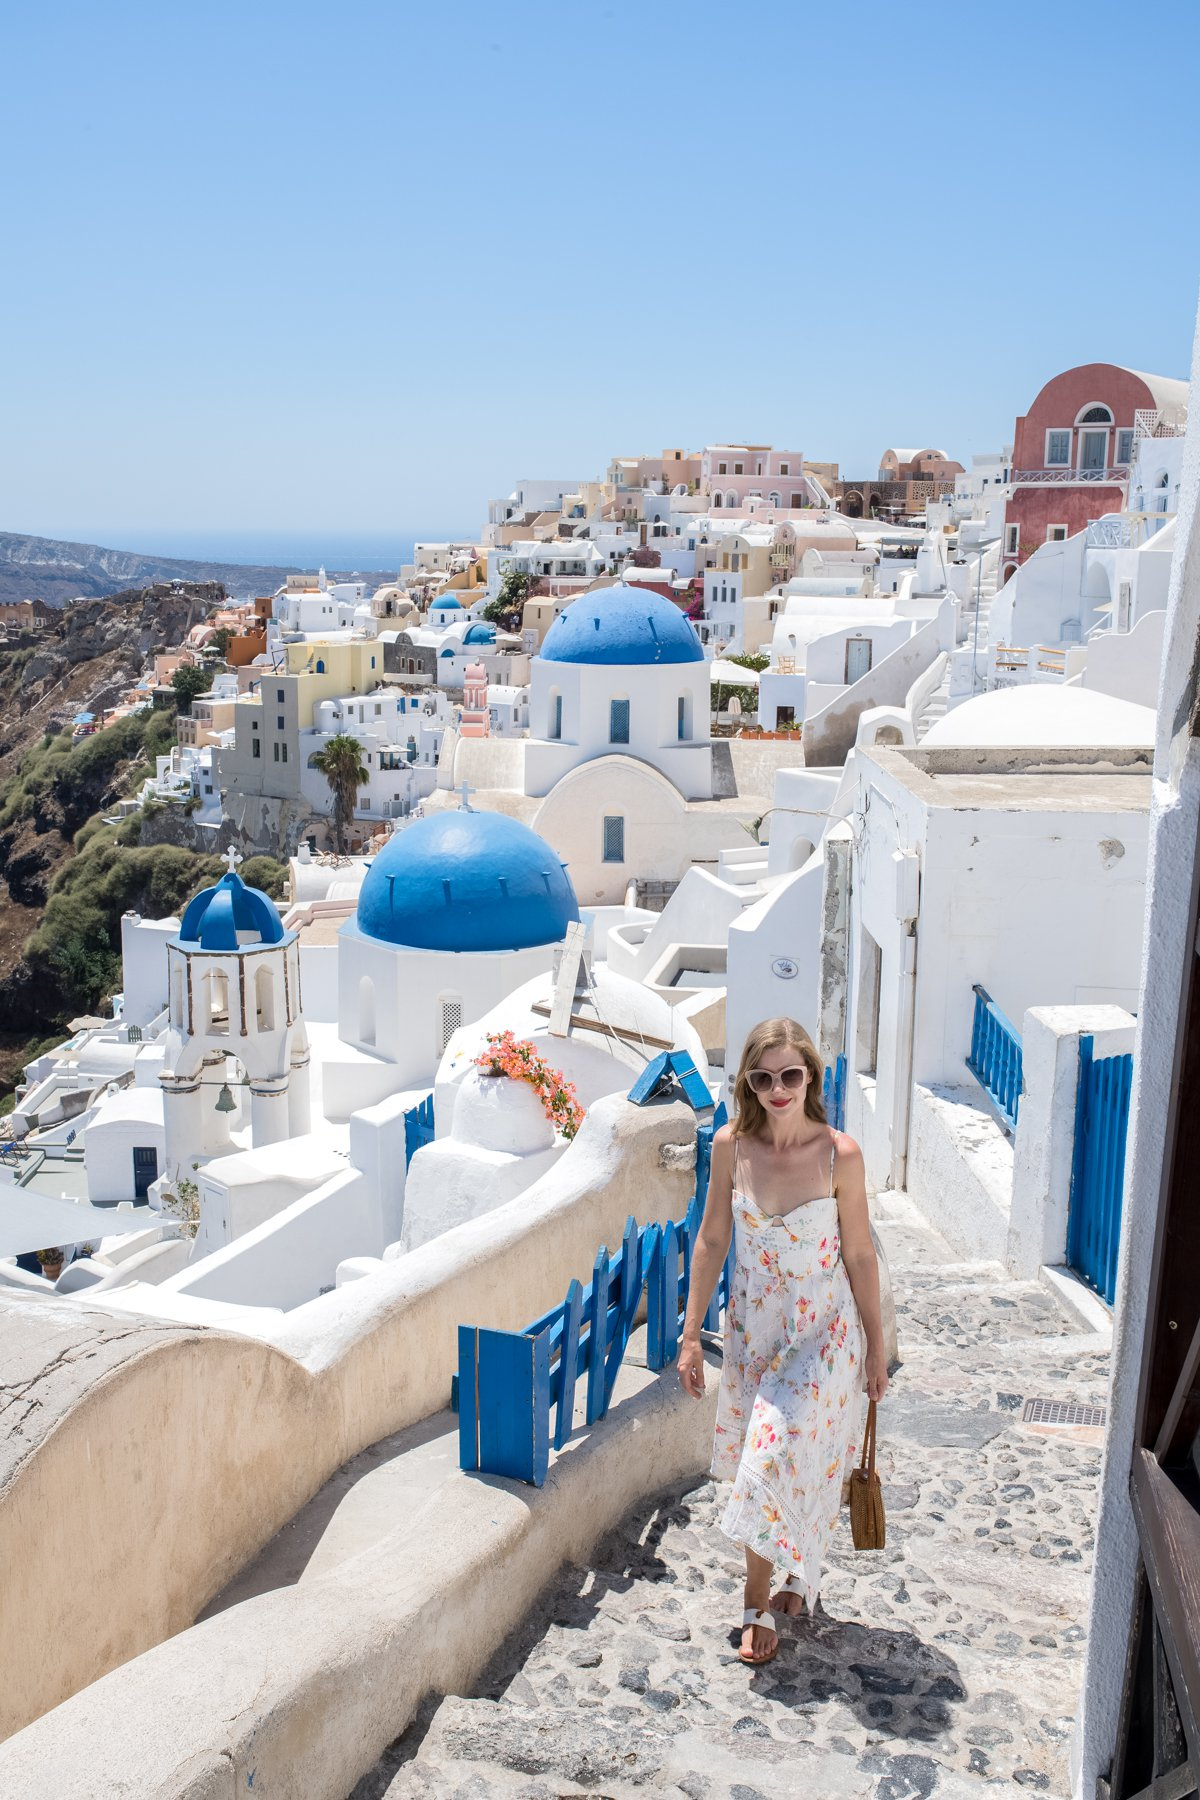 The Greek Isles - Santorini - STACIE FLINNER